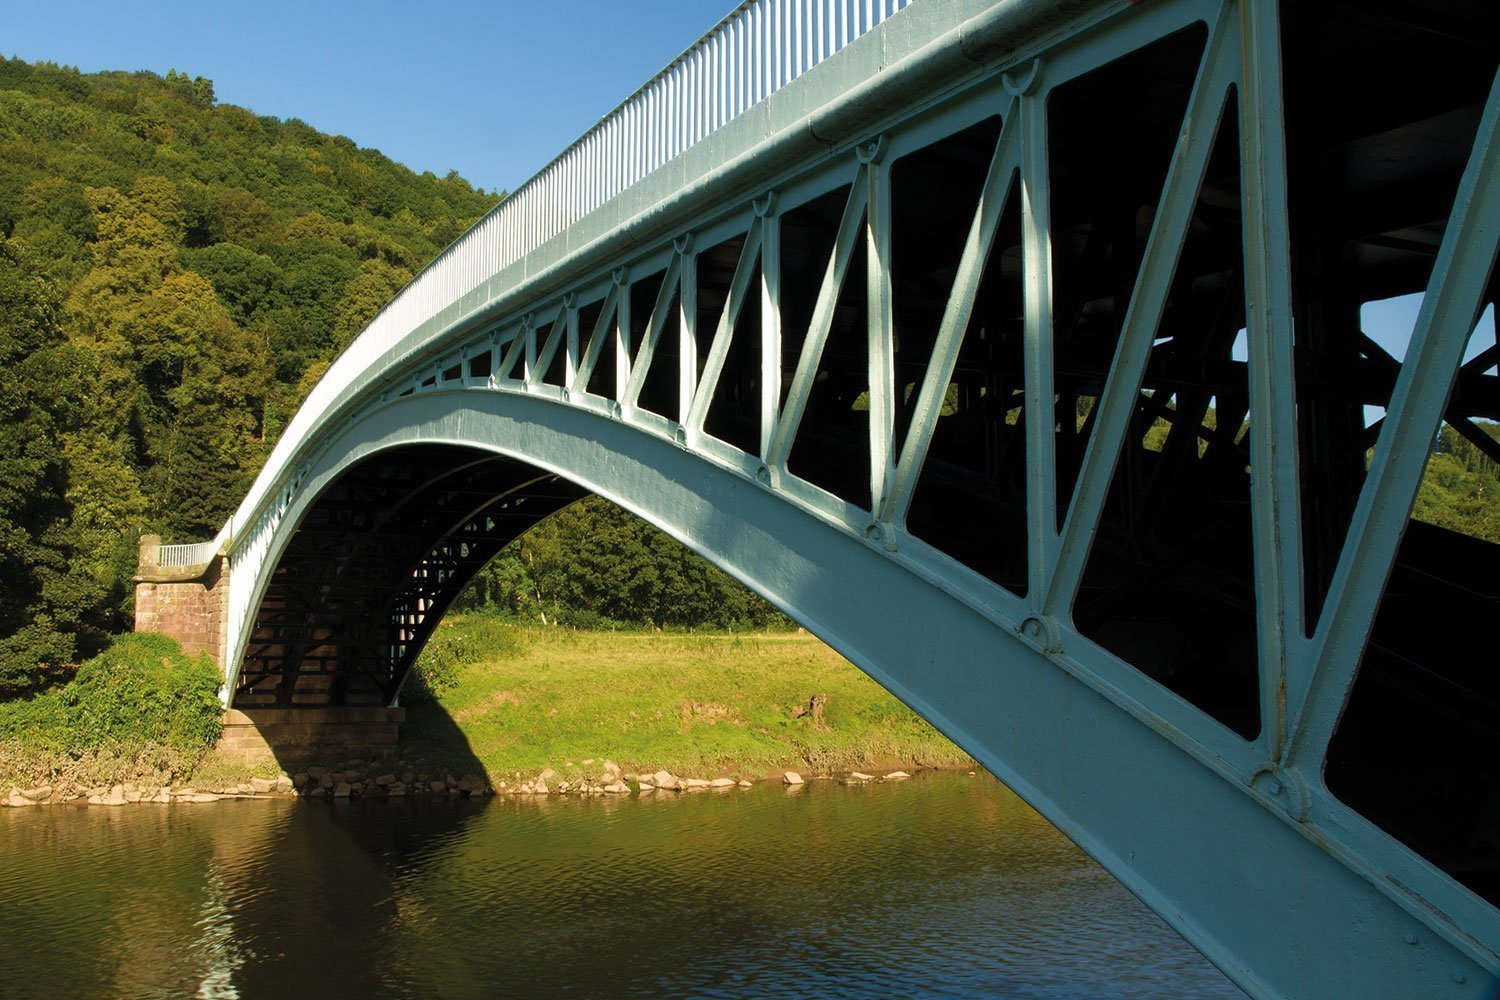 Bigsweir bridge crosses between Wales and England, in the united kingdom, it spans the River Wye in a single cast iron arch.